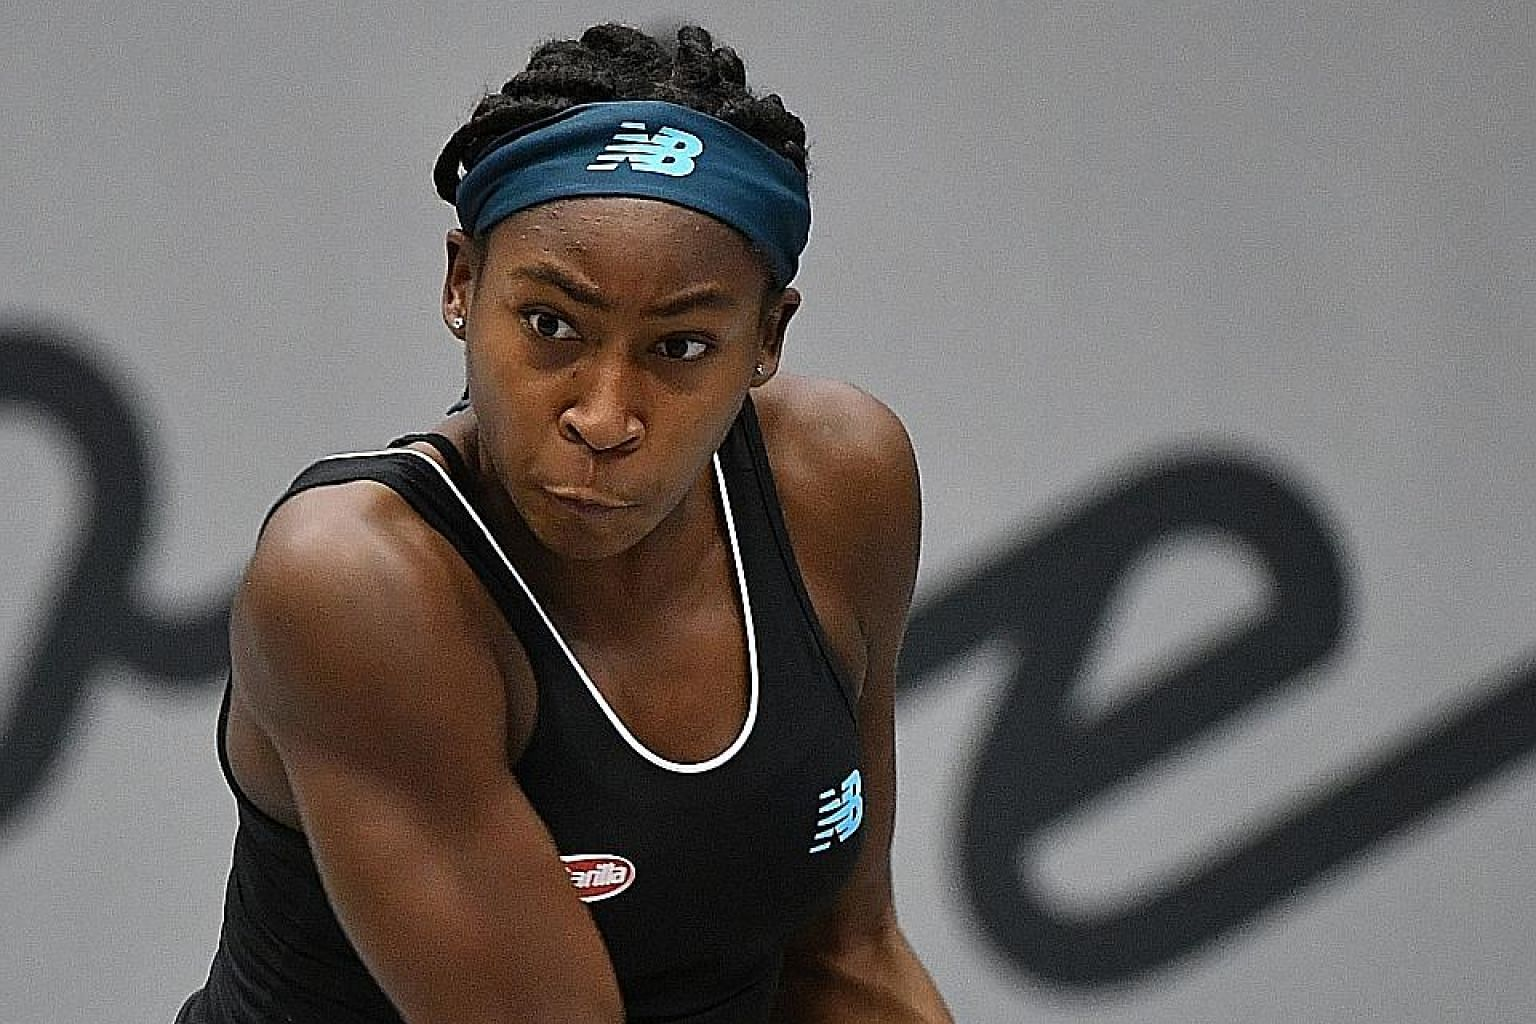 Teenage prodigy Coco Gauff on the way to claiming her first WTA title with a 6-3, 1-6, 6-2 victory over former French Open champion Jelena Ostapenko in Linz yesterday. PHOTO: DPA